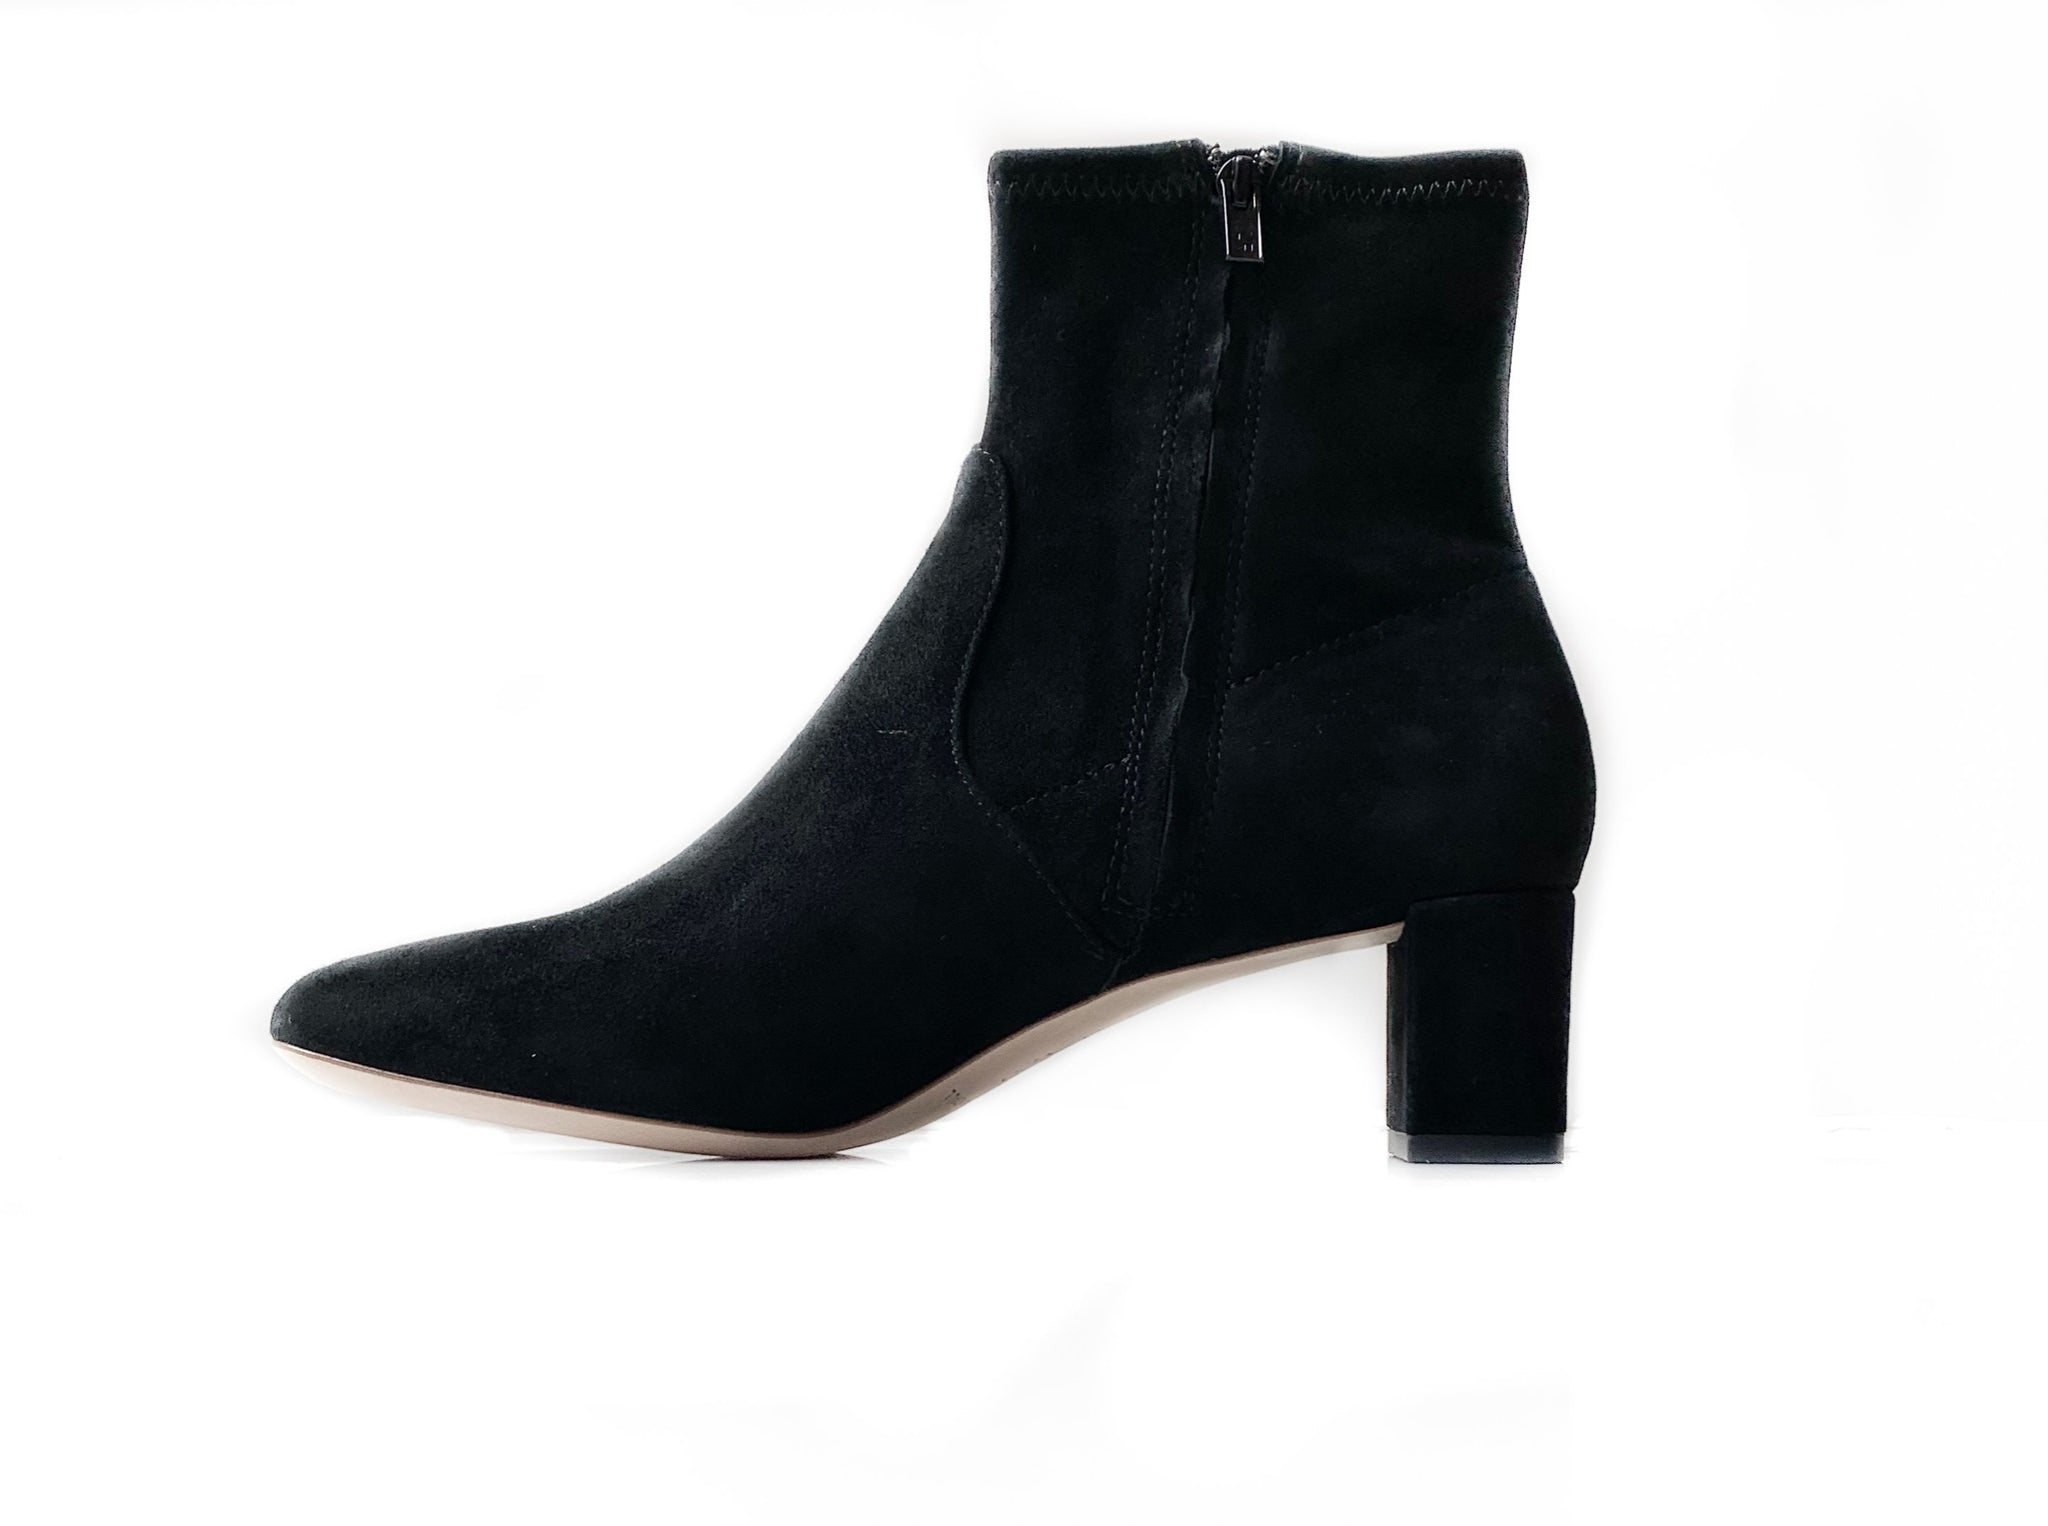 Cynthia Suede Bootie in Black